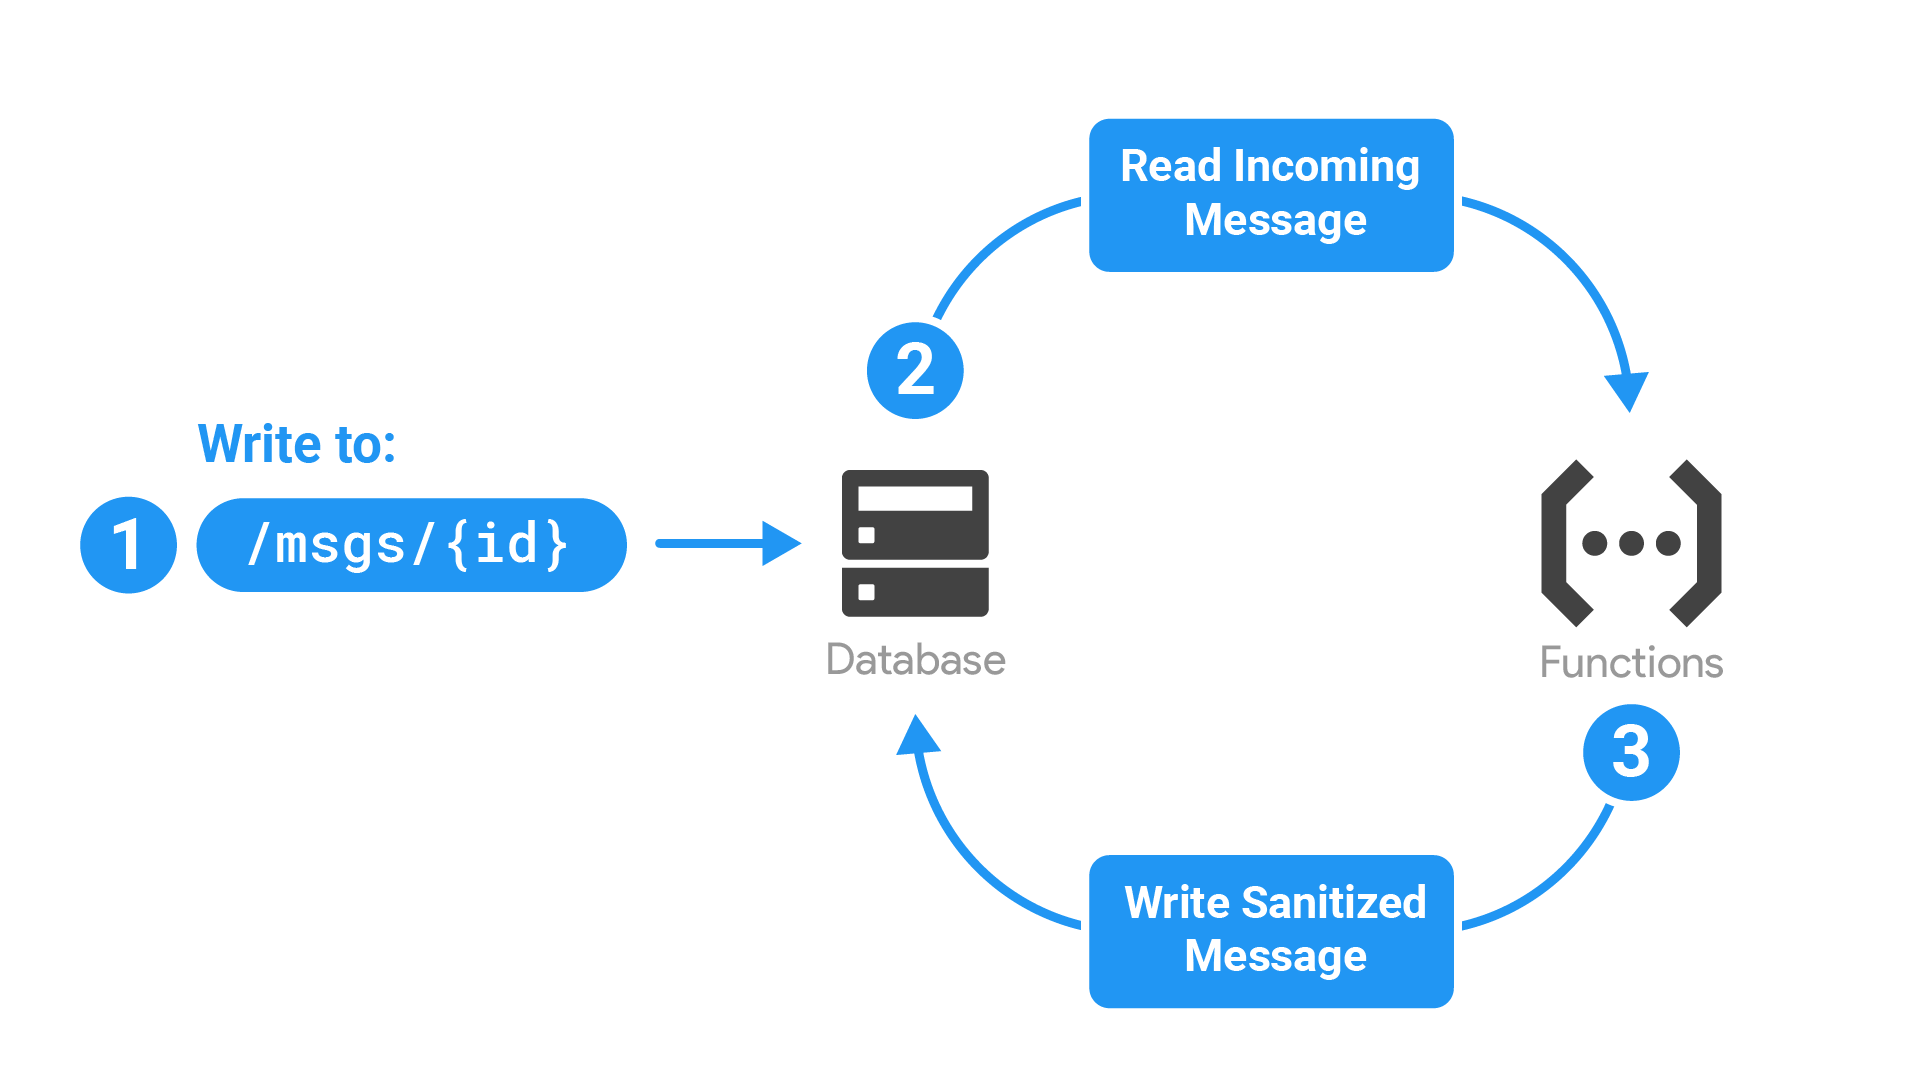 Perform Realtime Database sanitization and maintenance